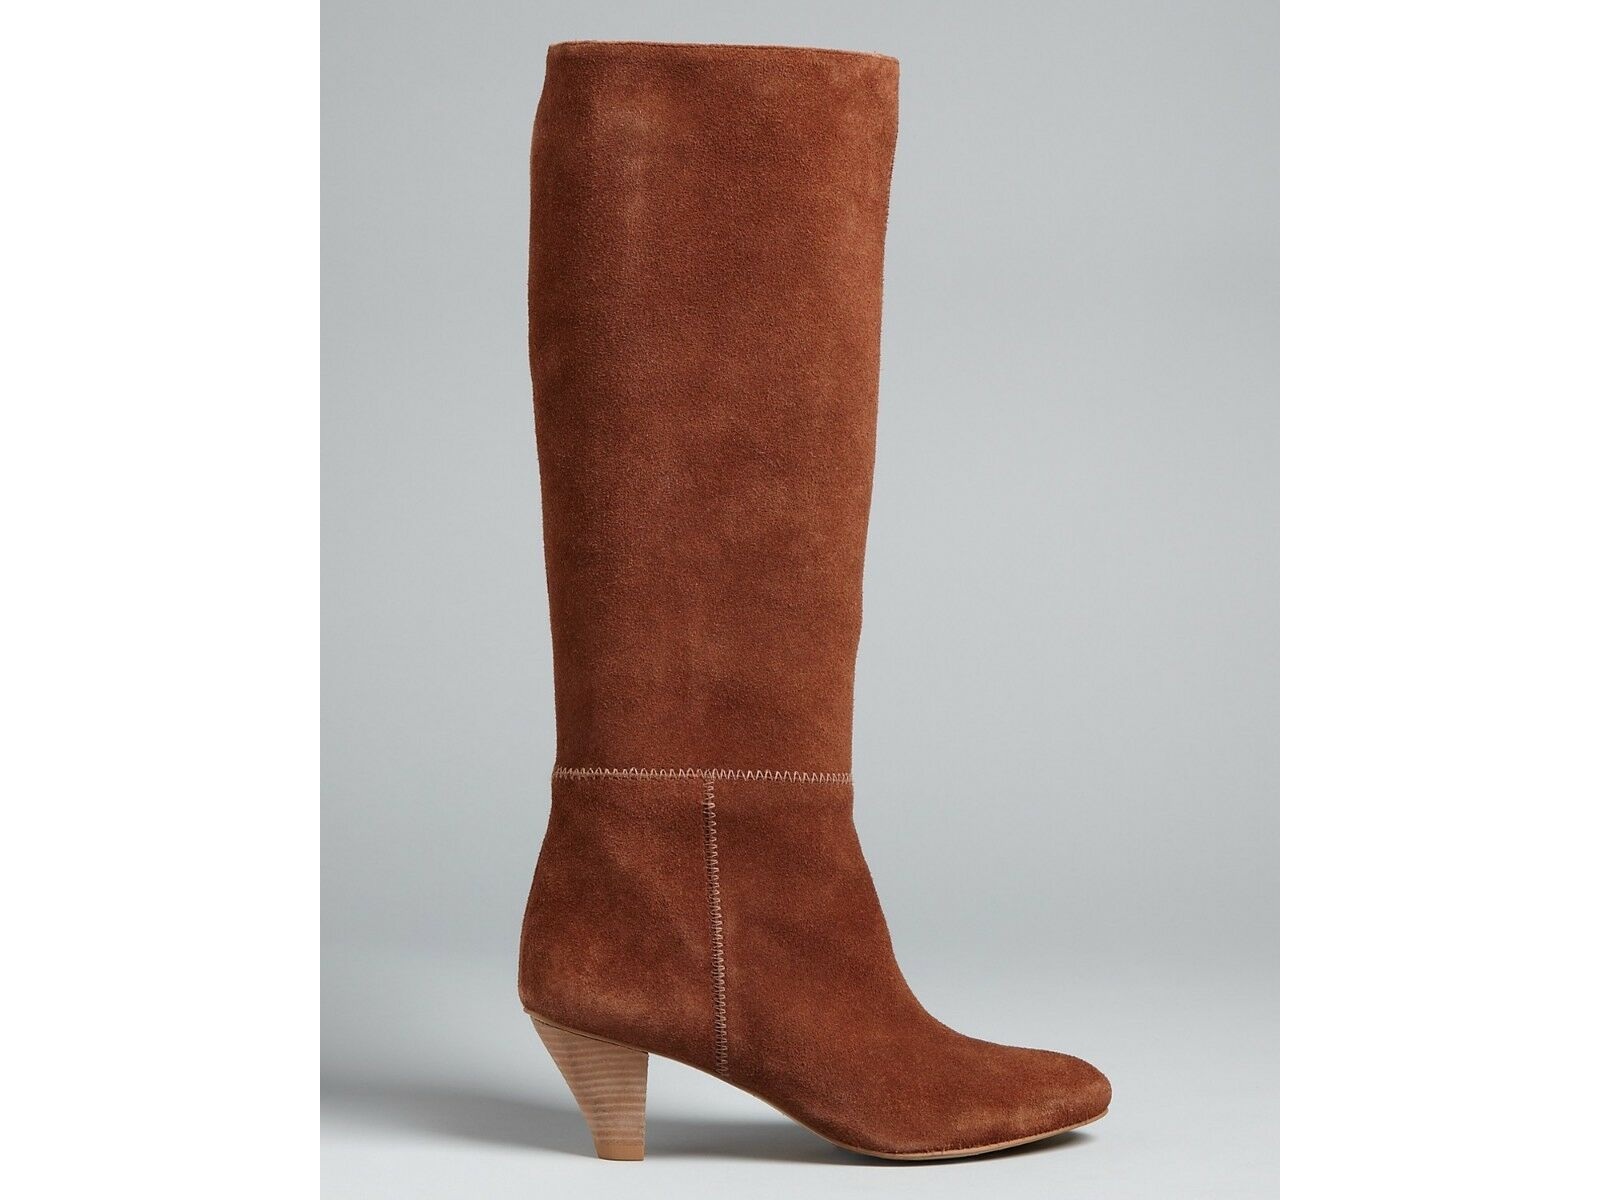 Twelfth Street by Cynthia Vincent Gigi Tall suede Boot, Brown Sz  6.5, ret-- 445